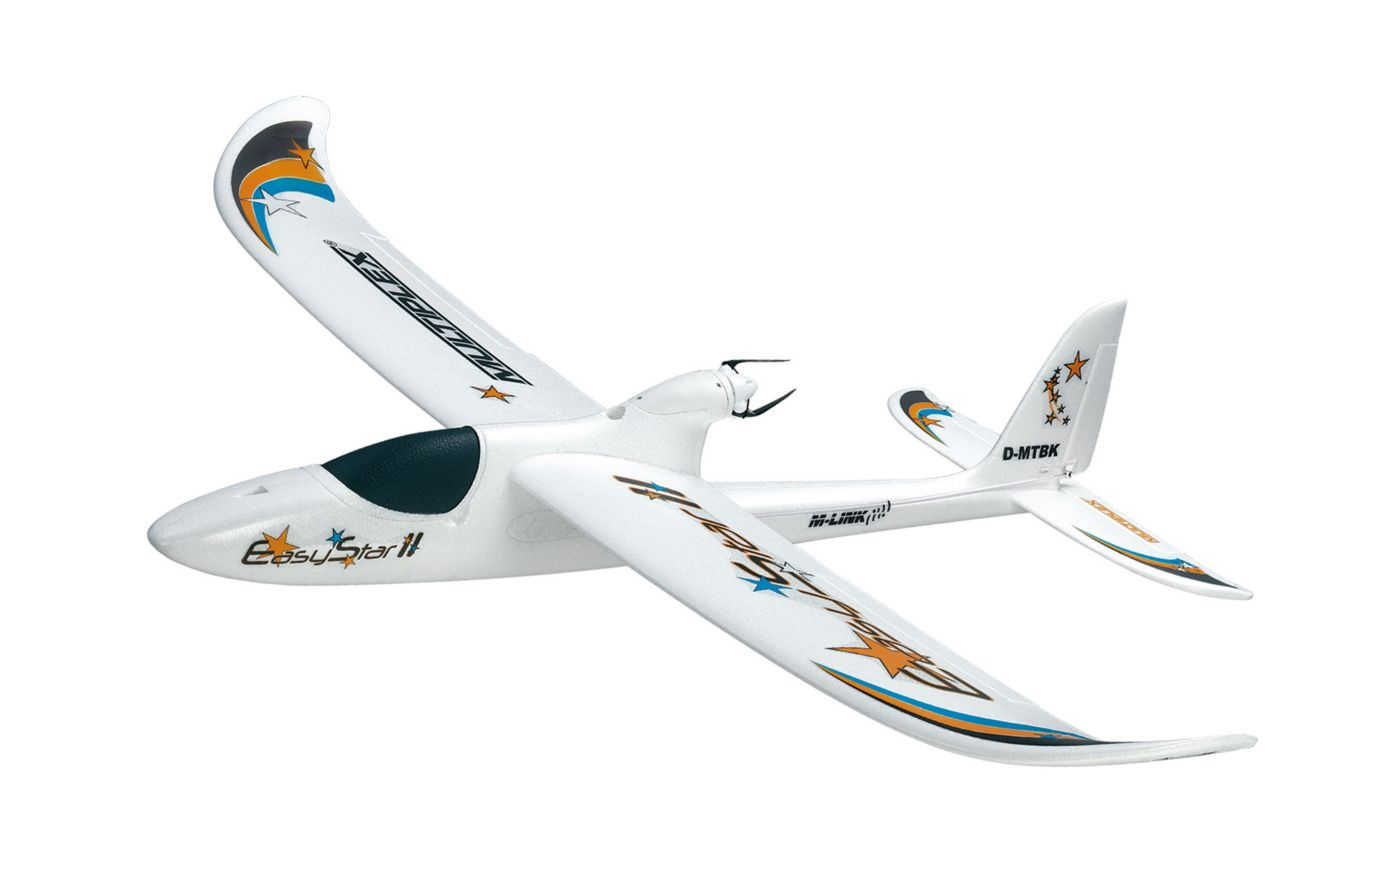 Image for Easy Star II 1.3m Kit from Force RC